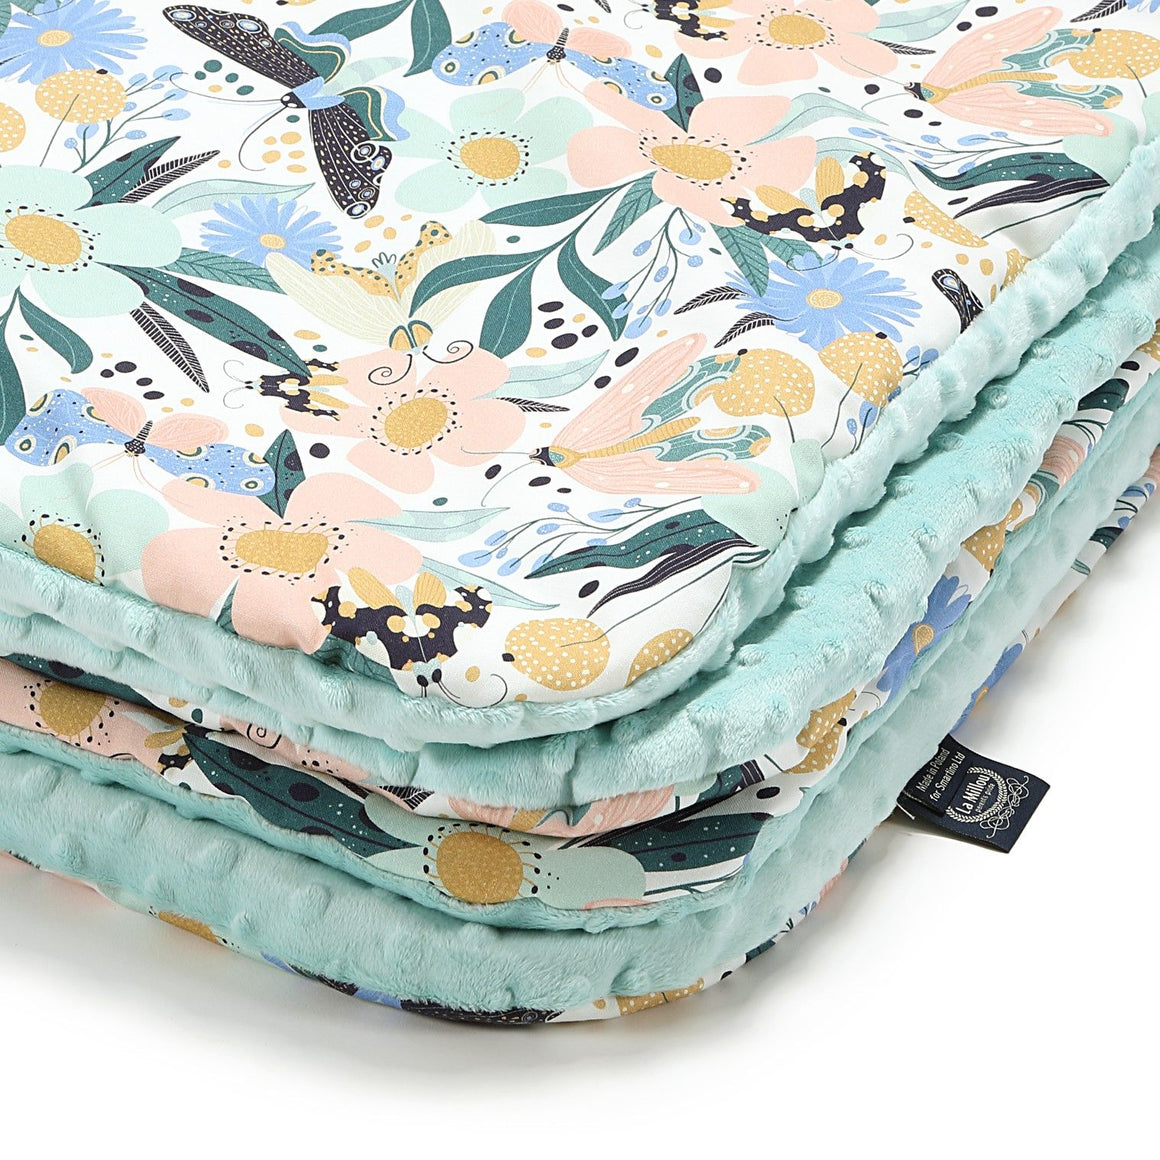 MEDIUM BLANKET - Fairytale Land | Audrey Mint